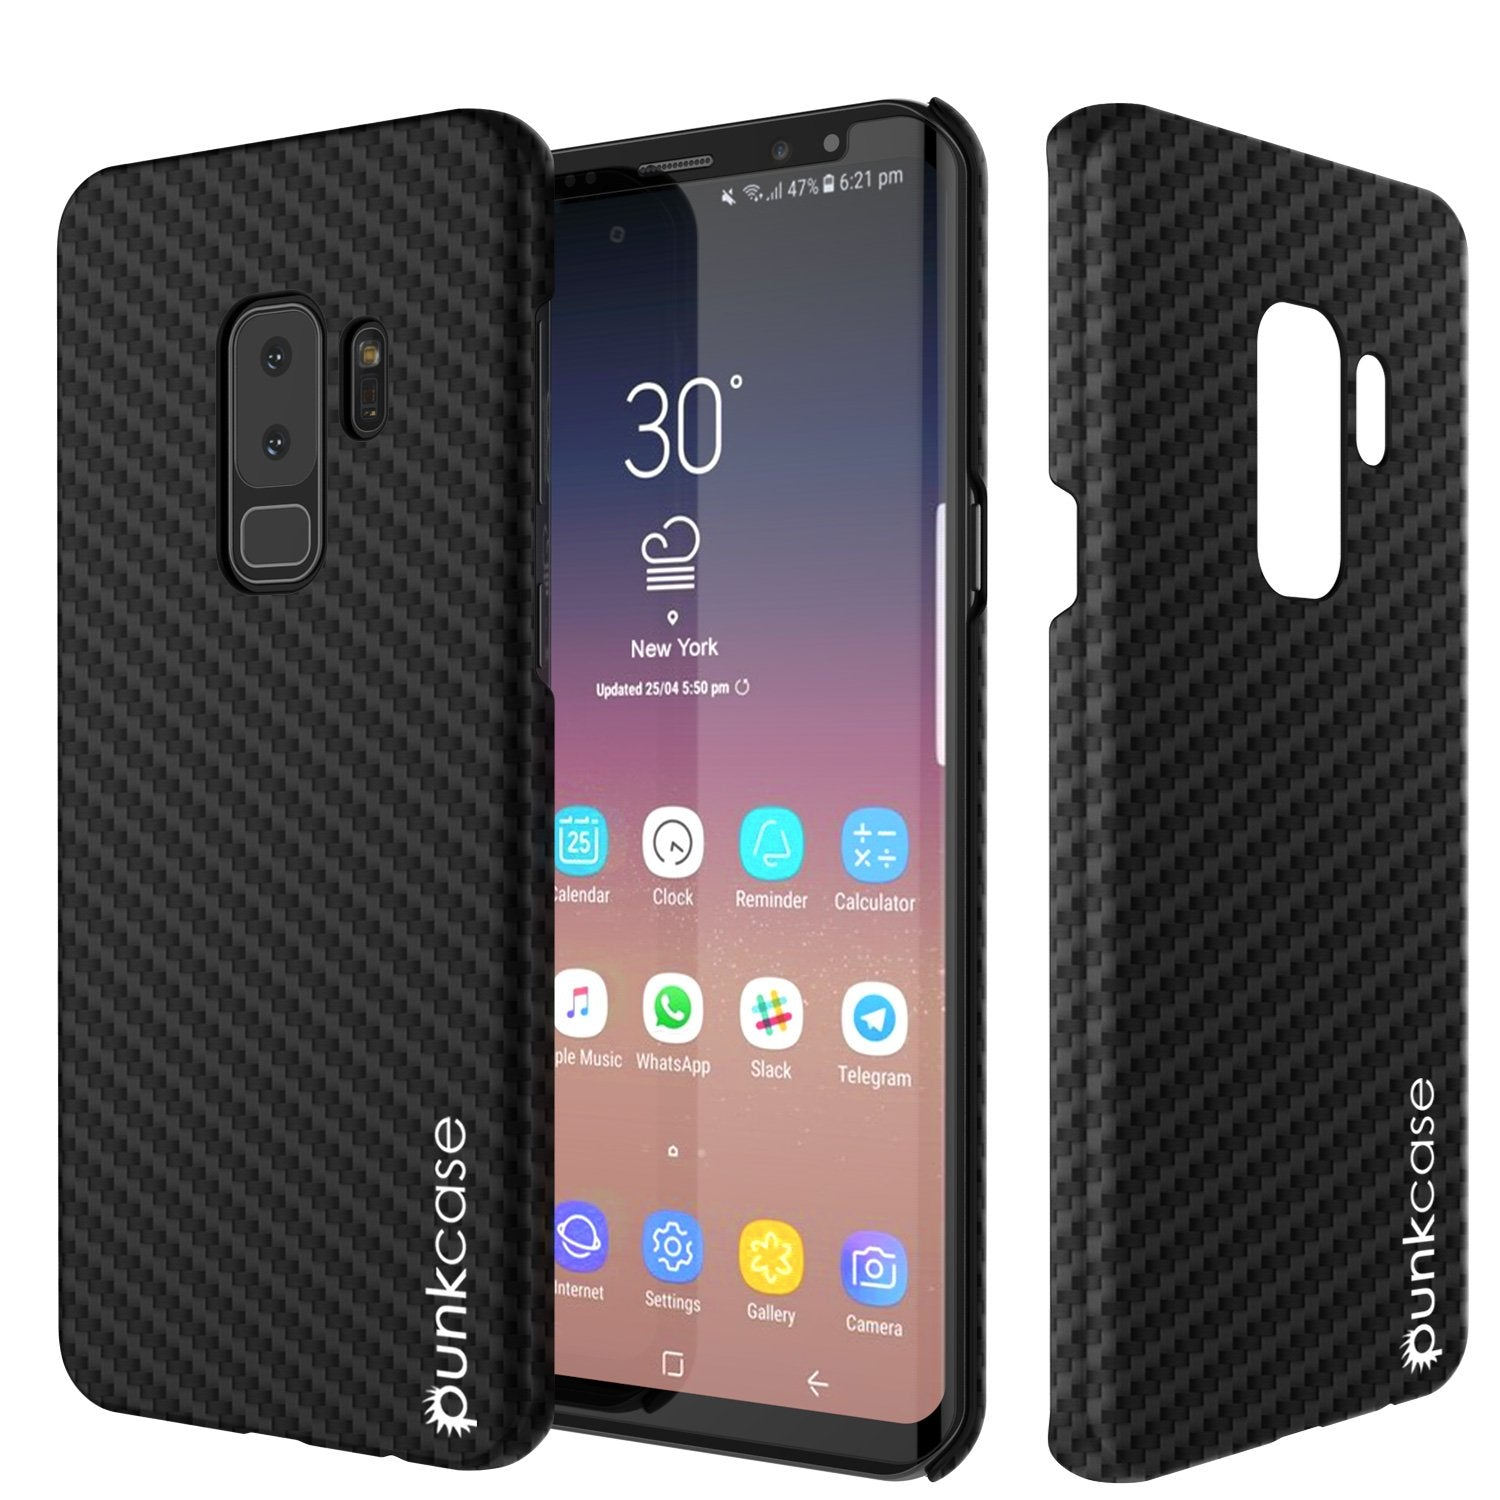 Galaxy S9 Plus Case, Punkcase CarbonShield, Heavy Duty & Ultra Thin 2 Piece Dual Layer PU Leather Cover [shockproof][non slip] with PUNKSHIELD Screen Protector for Samsung S9 Plus [jet black]